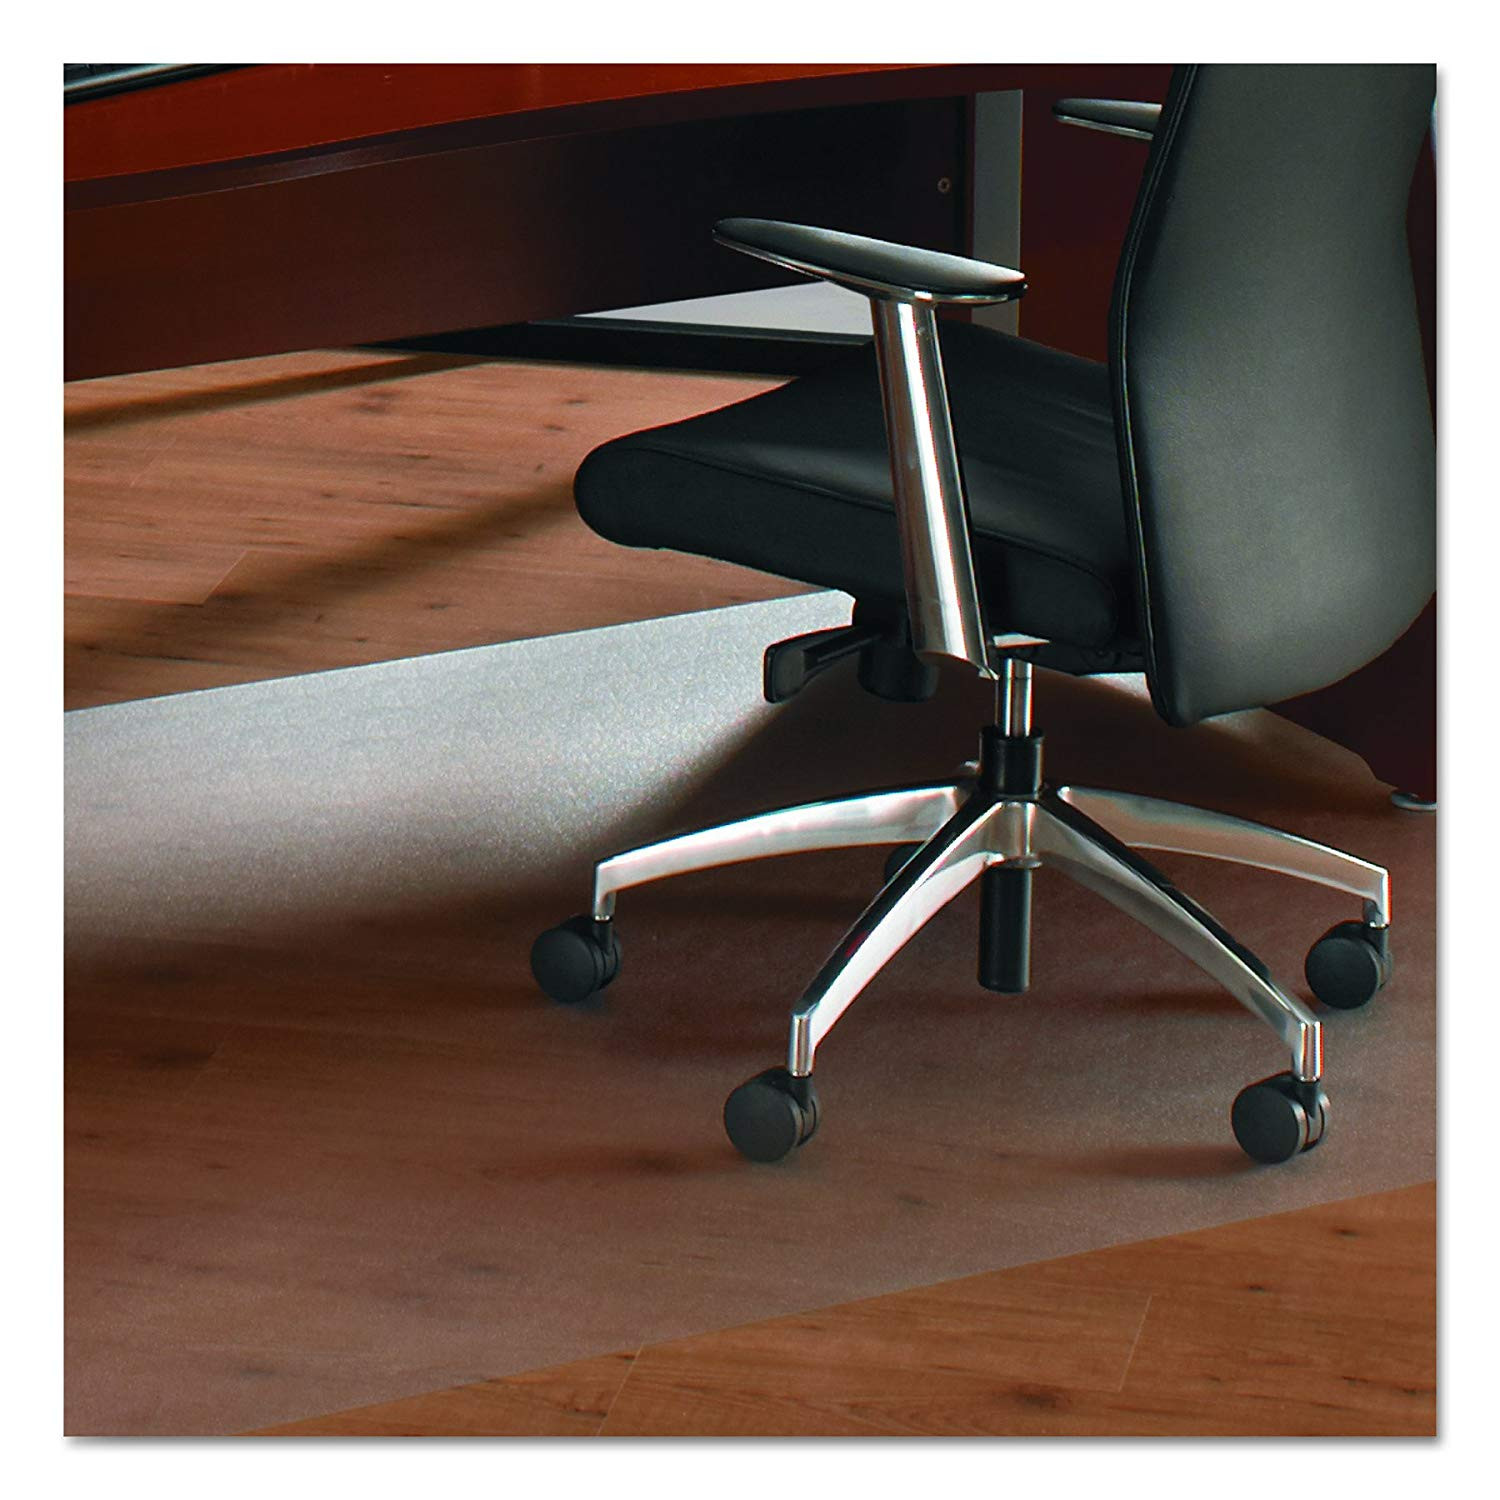 hardwood floor cost for 1500 sq ft of amazon com cleartex xxl general purpose office mat for hard within amazon com cleartex xxl general purpose office mat for hard floors strong polycarbonate rectangular 60 x 79 fr1215020019er carpet chair mats